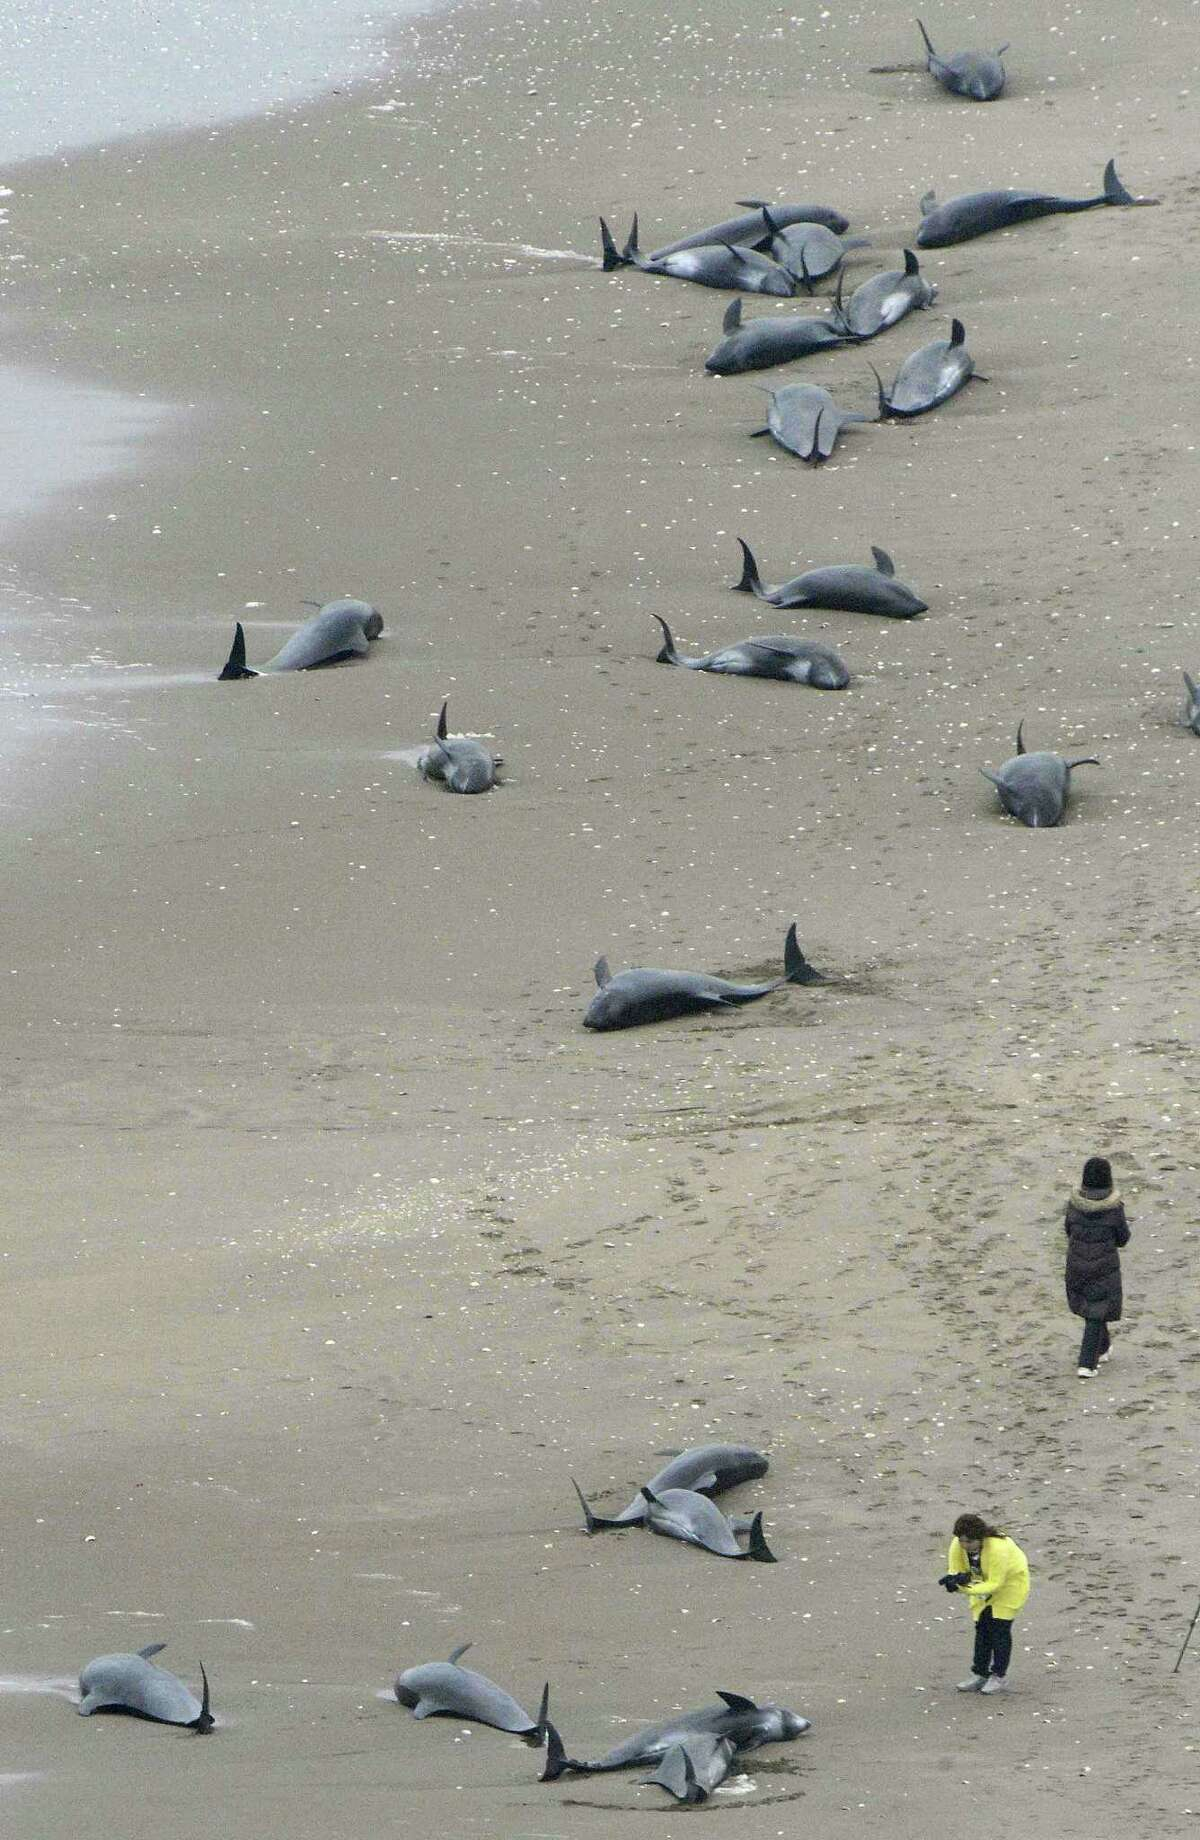 Dolphins lie on the beach in Hokota, north of Tokyo, Friday, April 10, 2015. Nearly 150 dolphins were found washed ashore the coast in central Japan on Friday morning. A Hokota city official said a total of 149 dolphins were found stranded on the beach by noon local time.